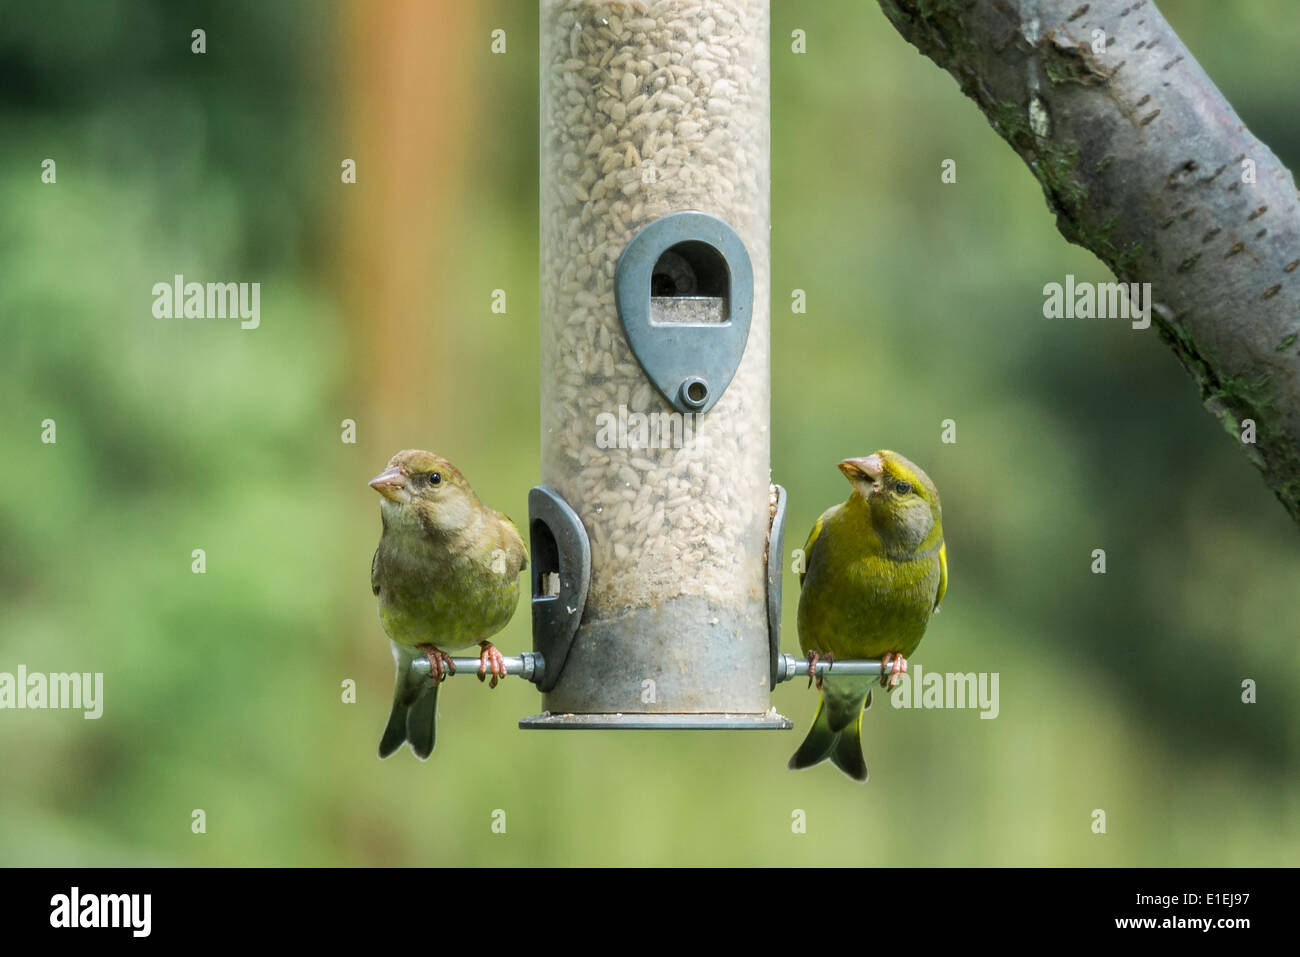 Male and Female Greenfinches on a Bird Feeder - Stock Image